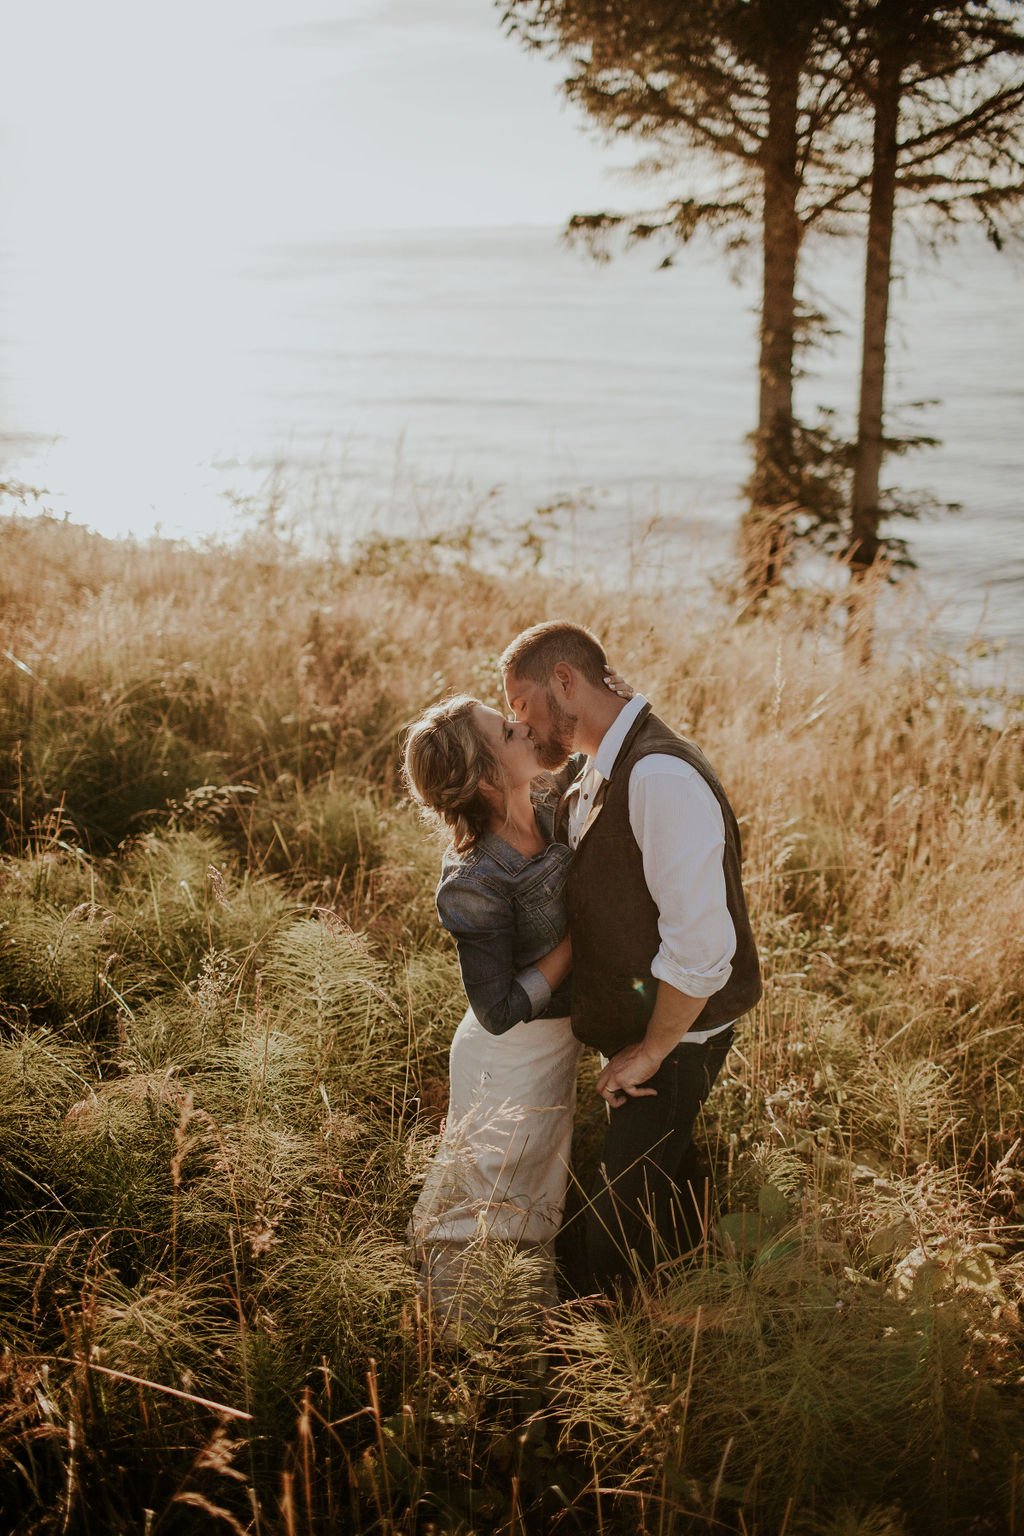 Port-Angeles-Wedding-Photographer-pnw-Whiskey-Creek-Beach-NW-Washington-couples-kayladawnphoto-kayla-dawn-photography-olympic-peninsula-hurricane-ridge-37.jpg